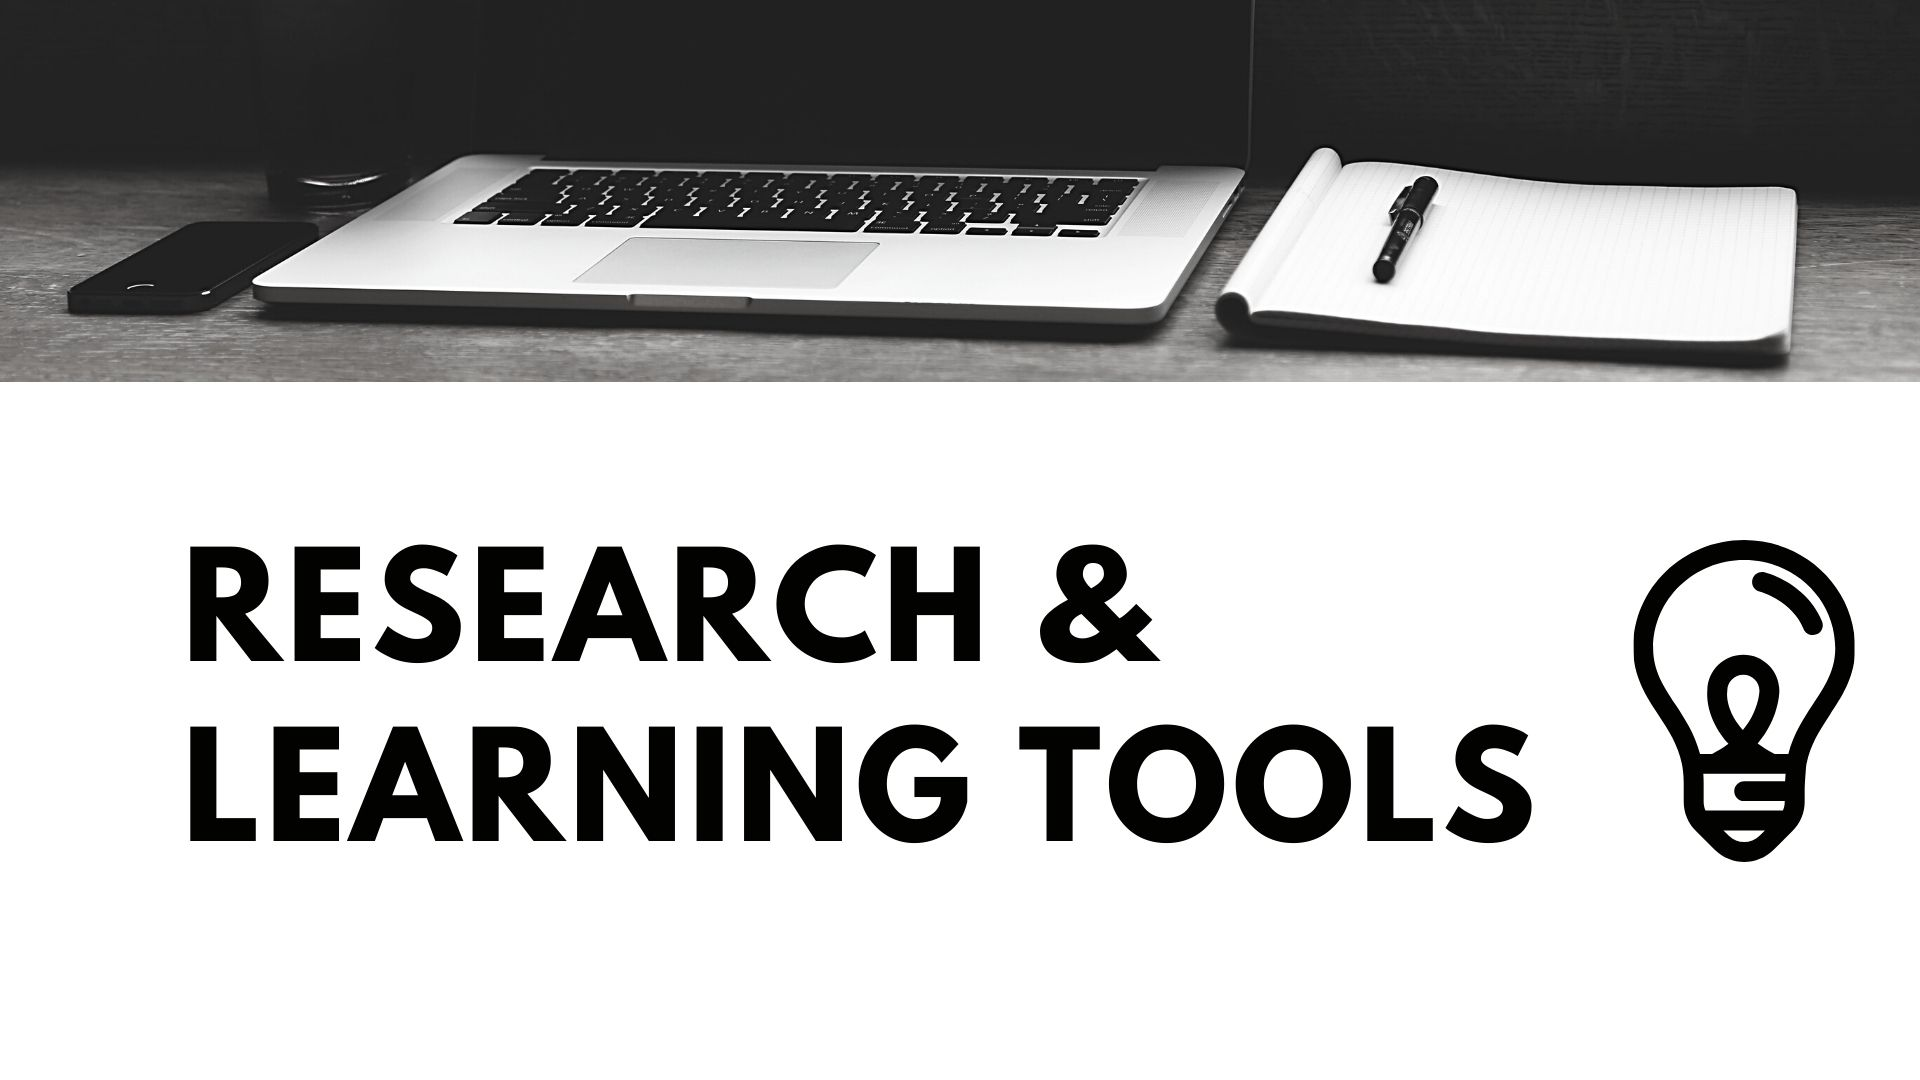 research & learning tools